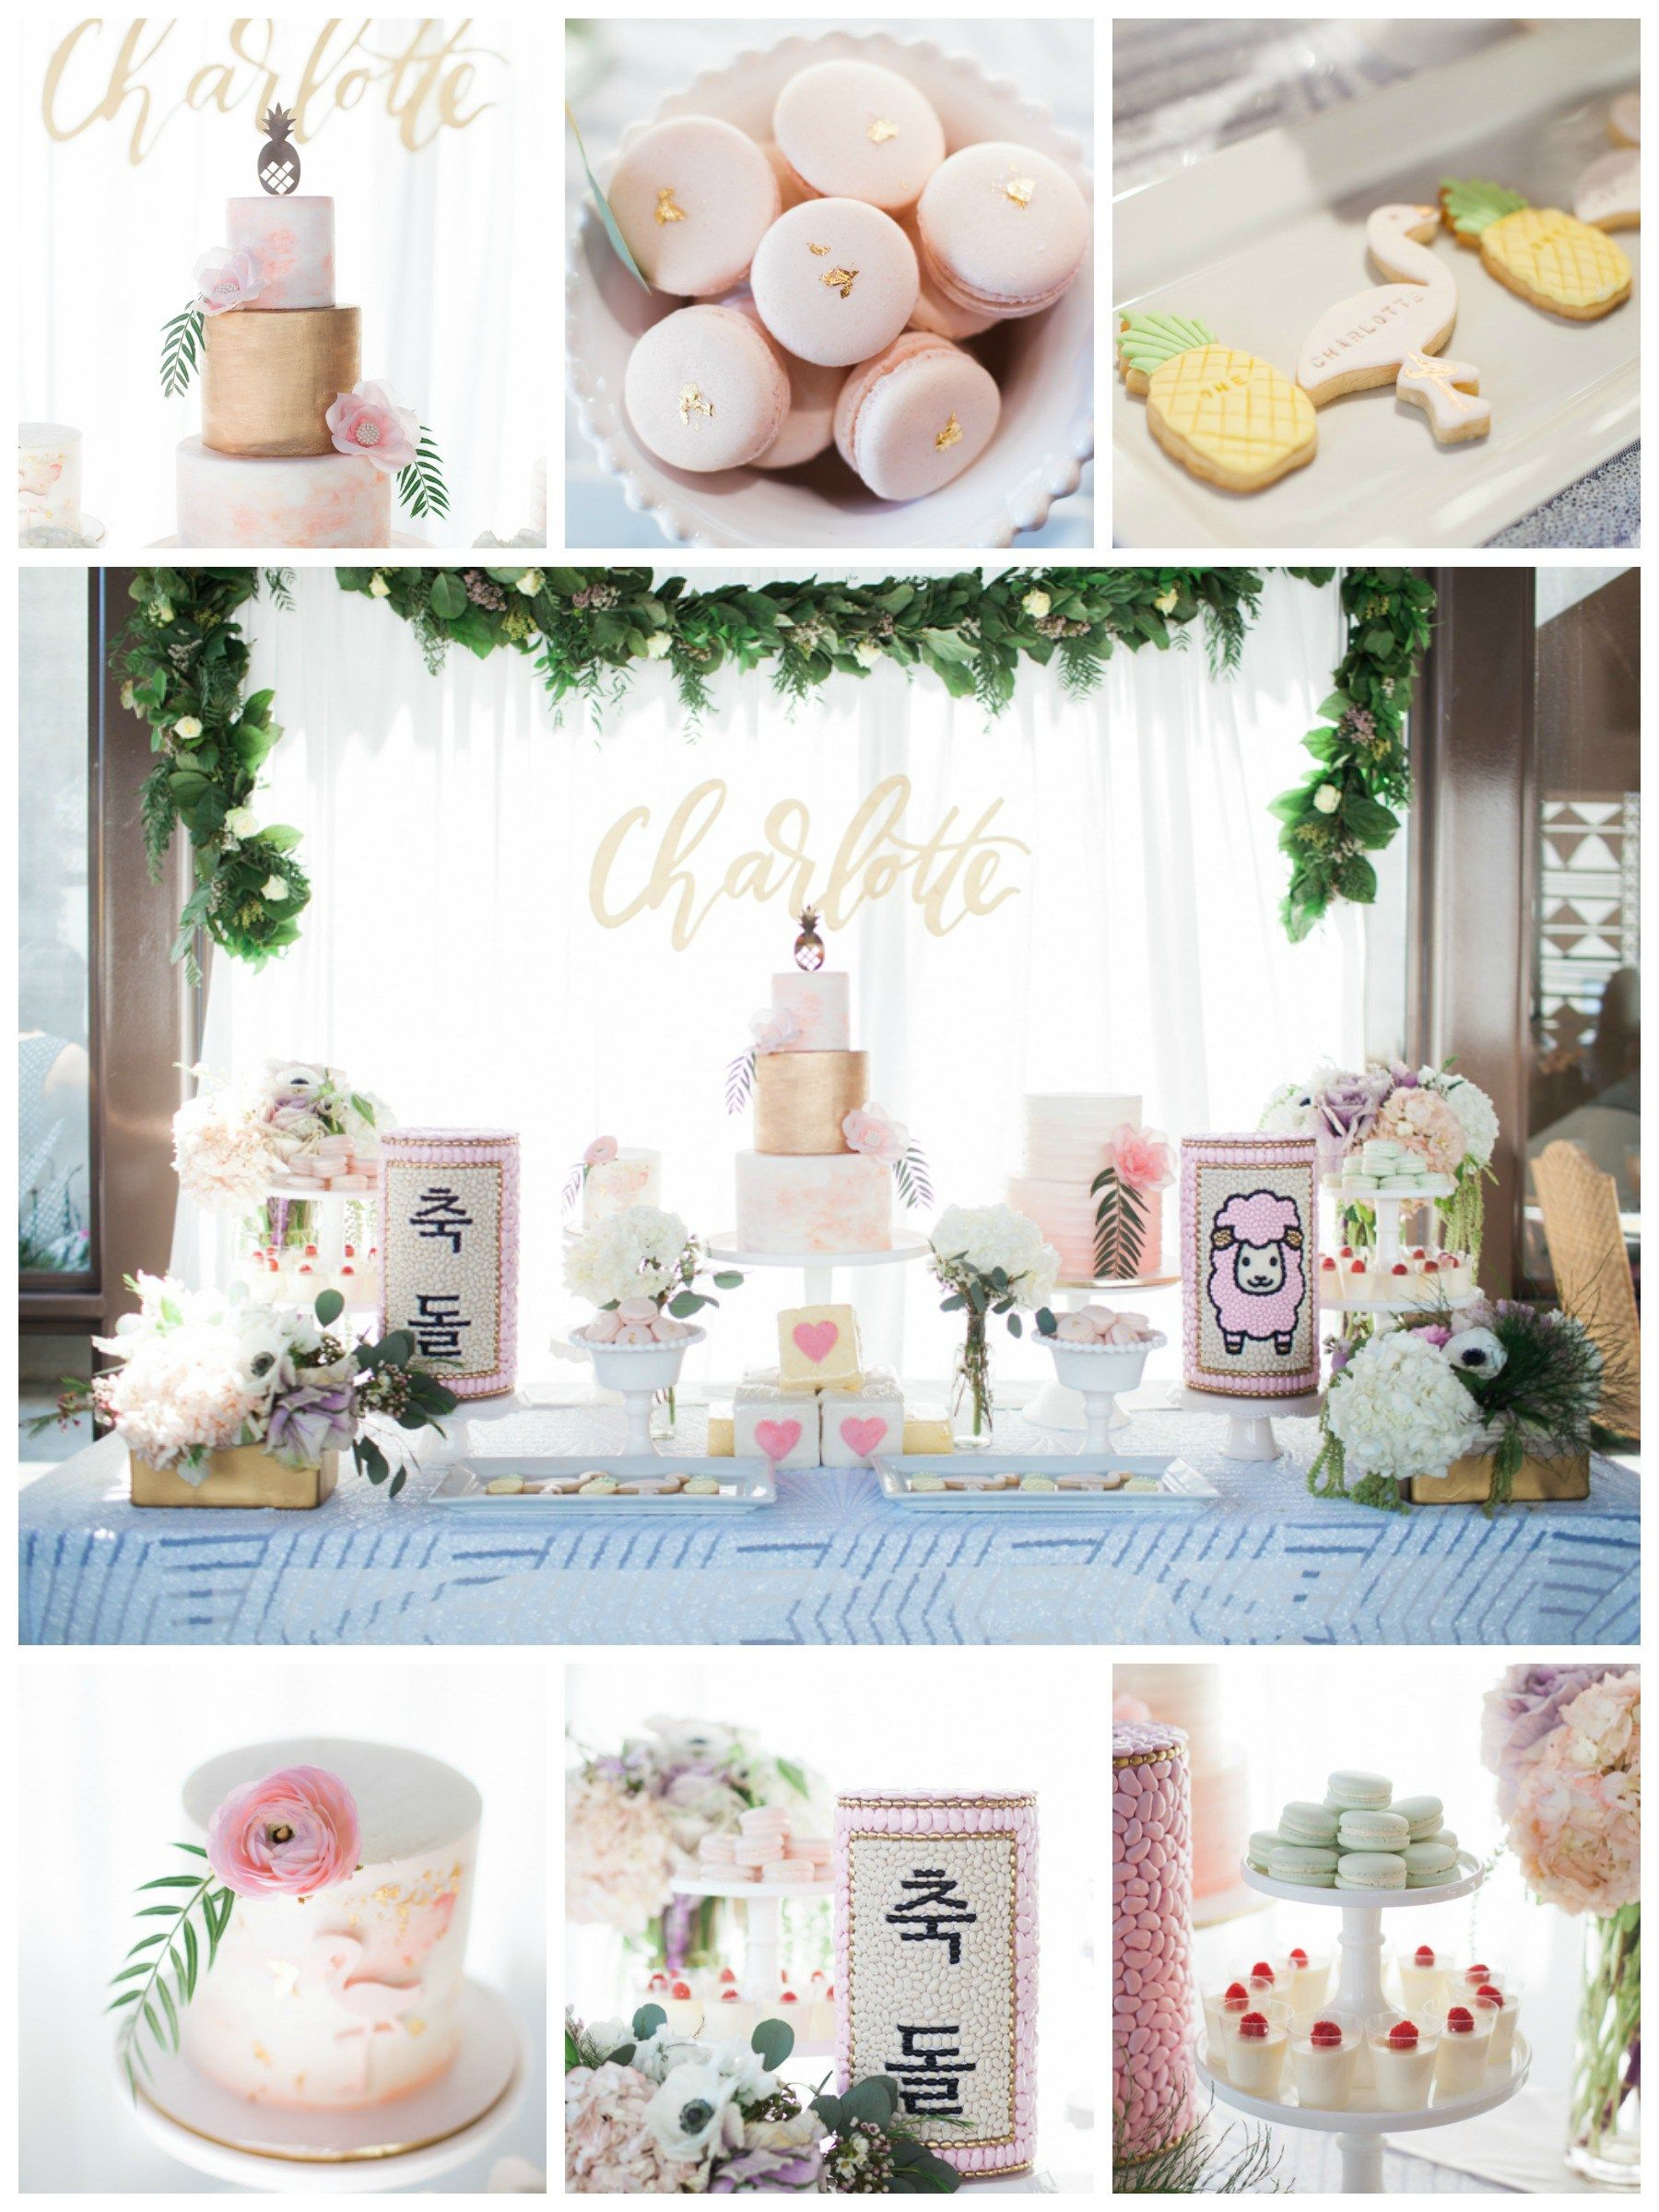 Korean Themed Party Decorations First Birthday Party Hawaiian Theme Pastel Colors White Pink